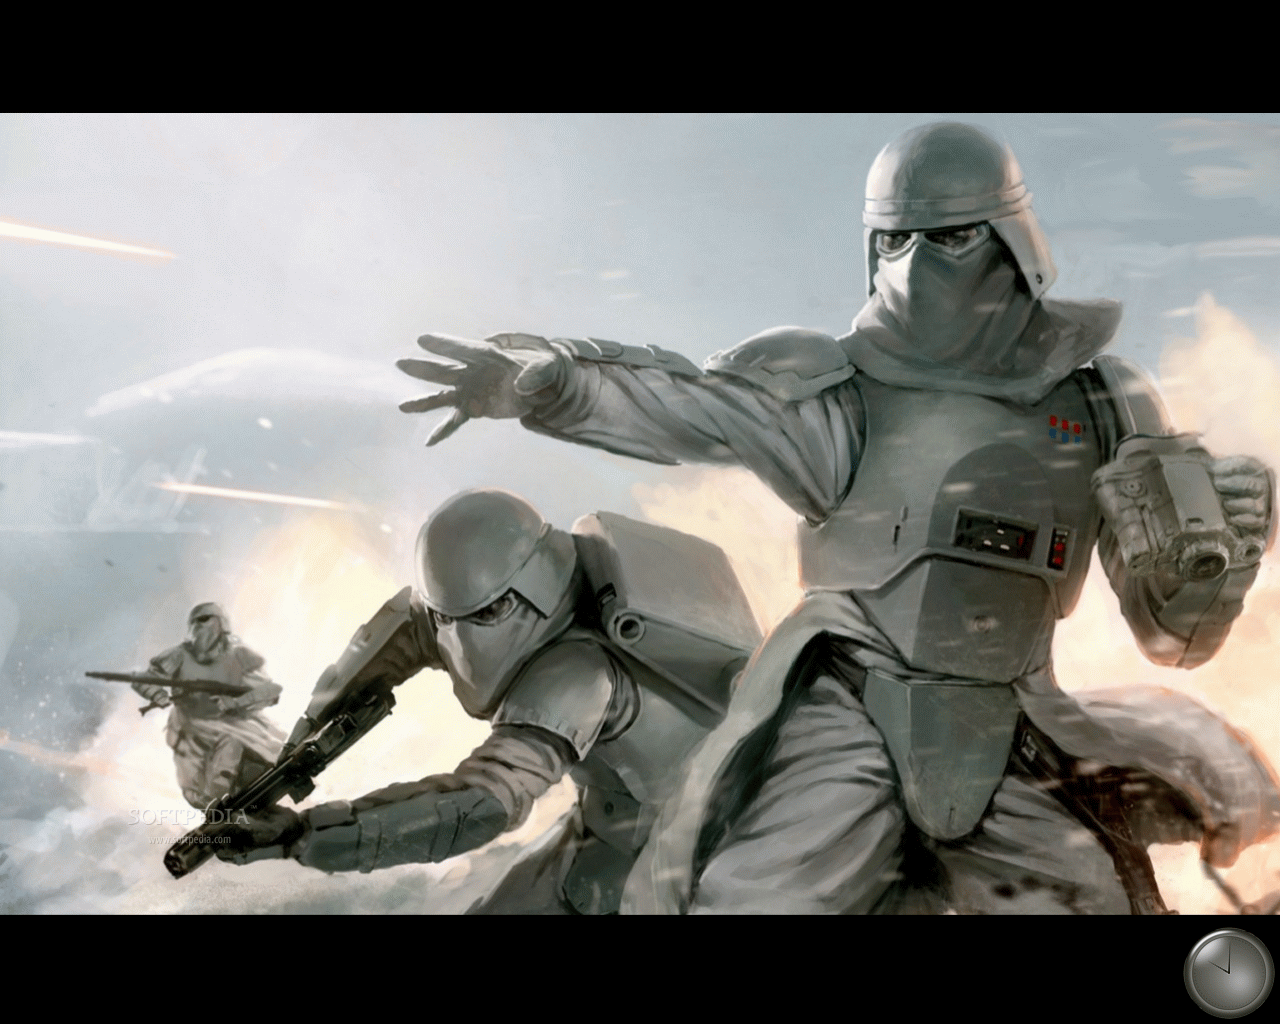 Wars Screensaver   This is a sample from what Star Wars Screensaver 1280x1024